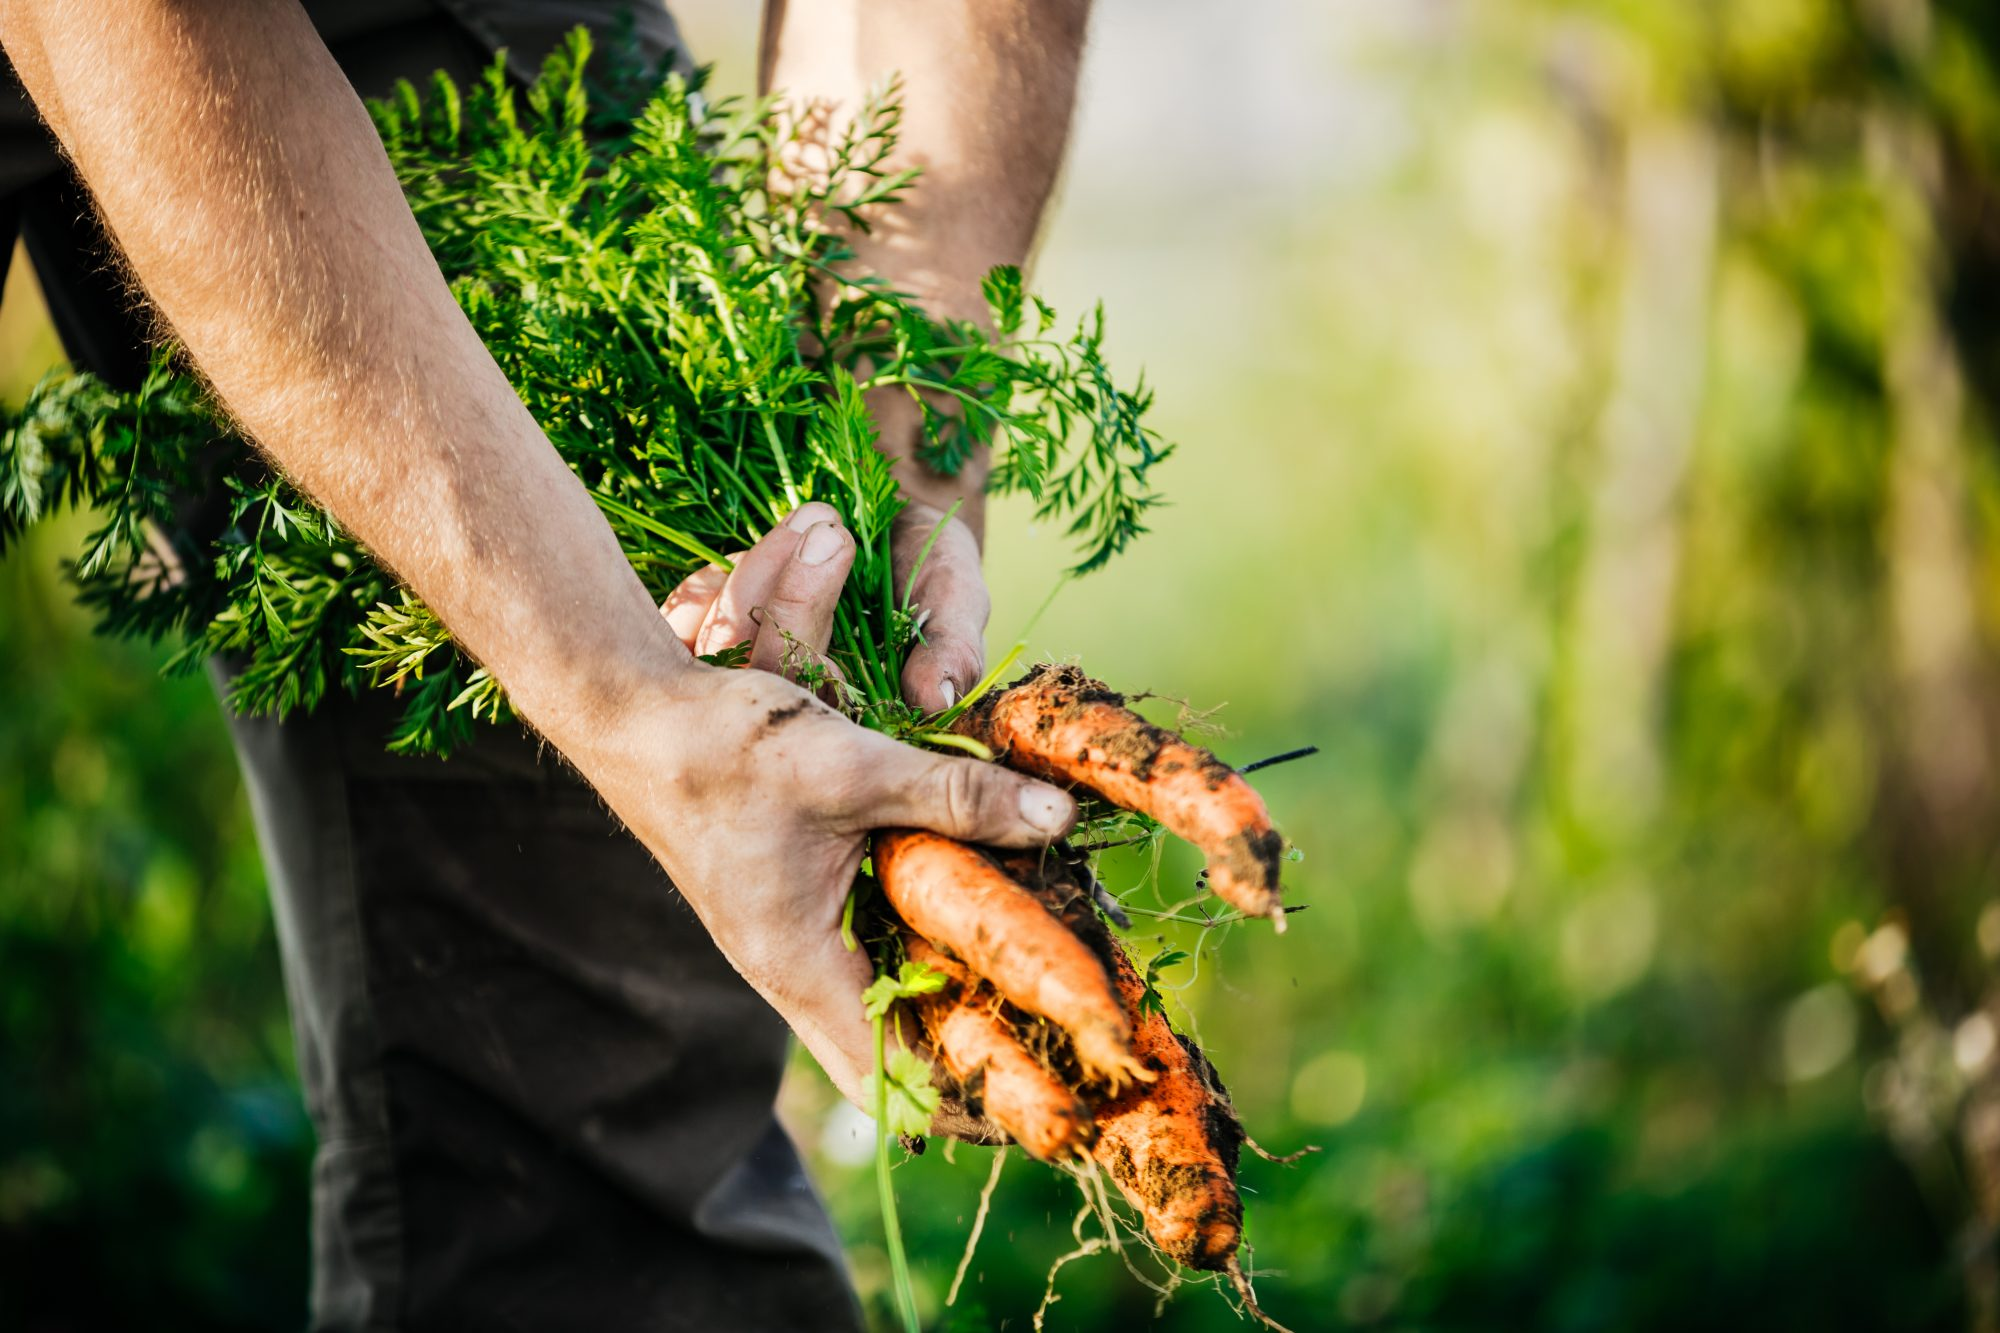 farmer pulling carrots out of the earth